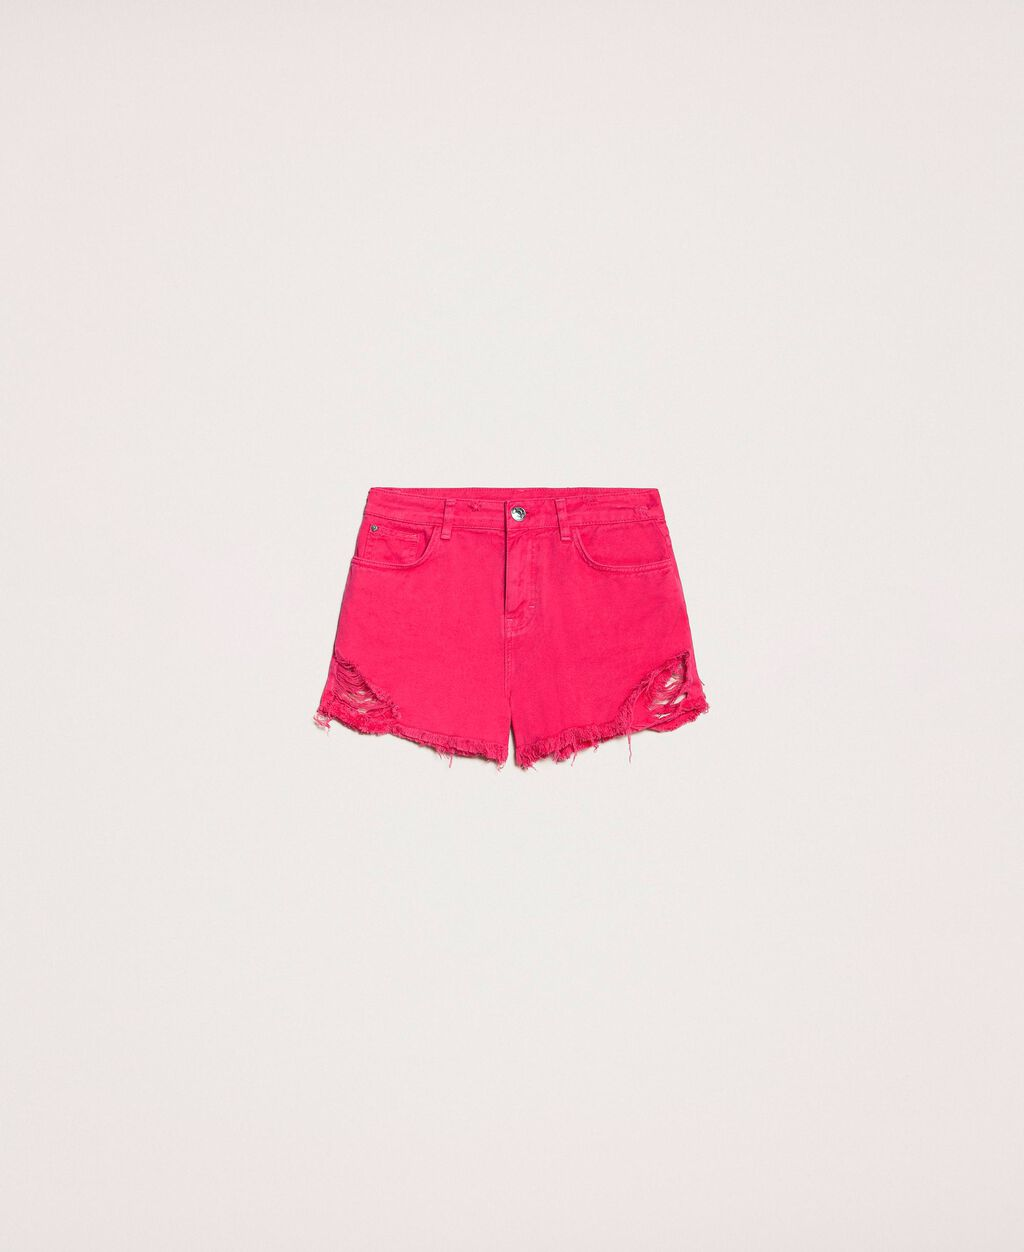 Shorts with rips and raw cut